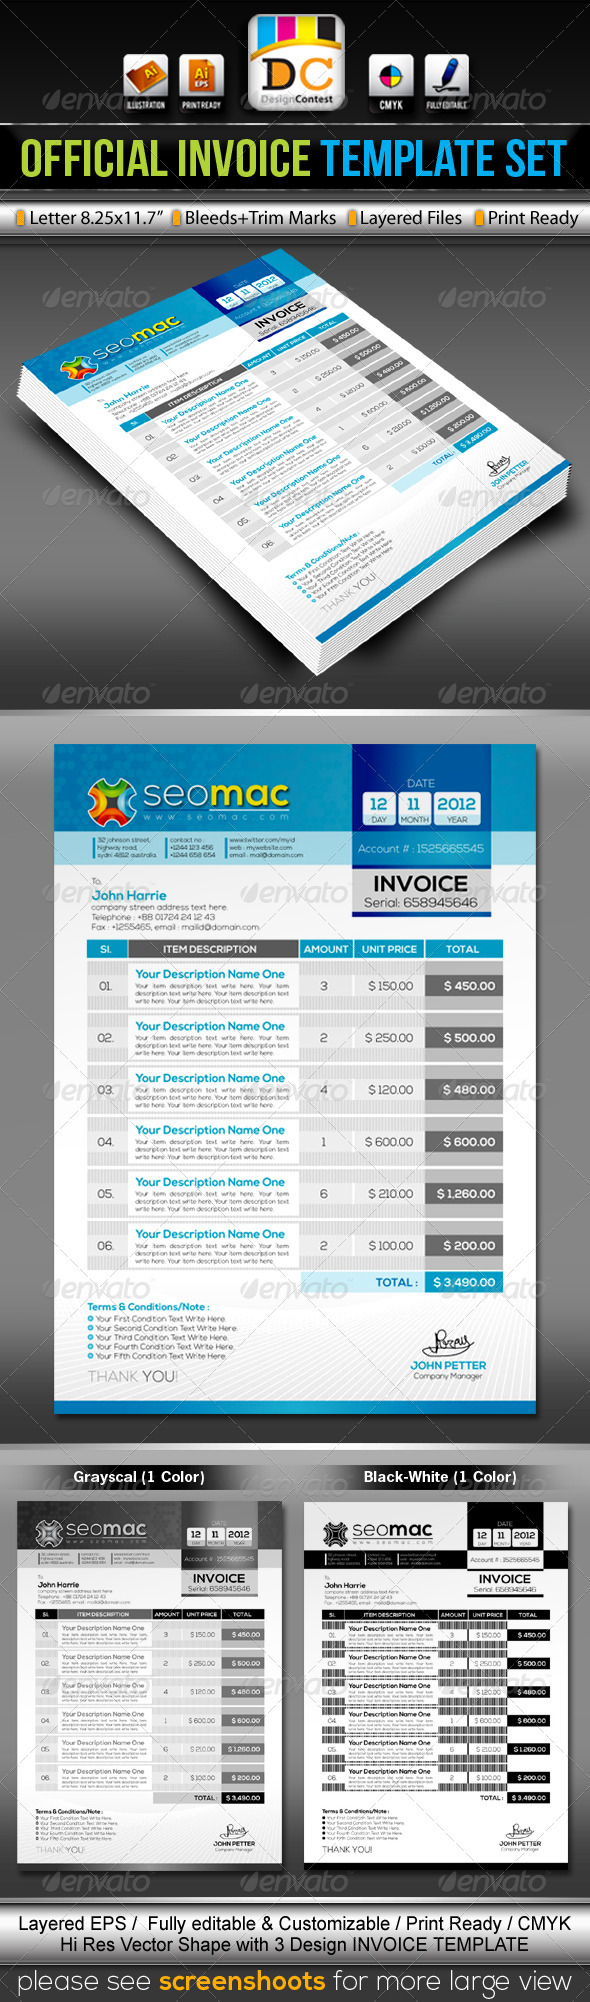 GraphicRiver SeoMac Official Invoice Cash Memo Template Set 3406268